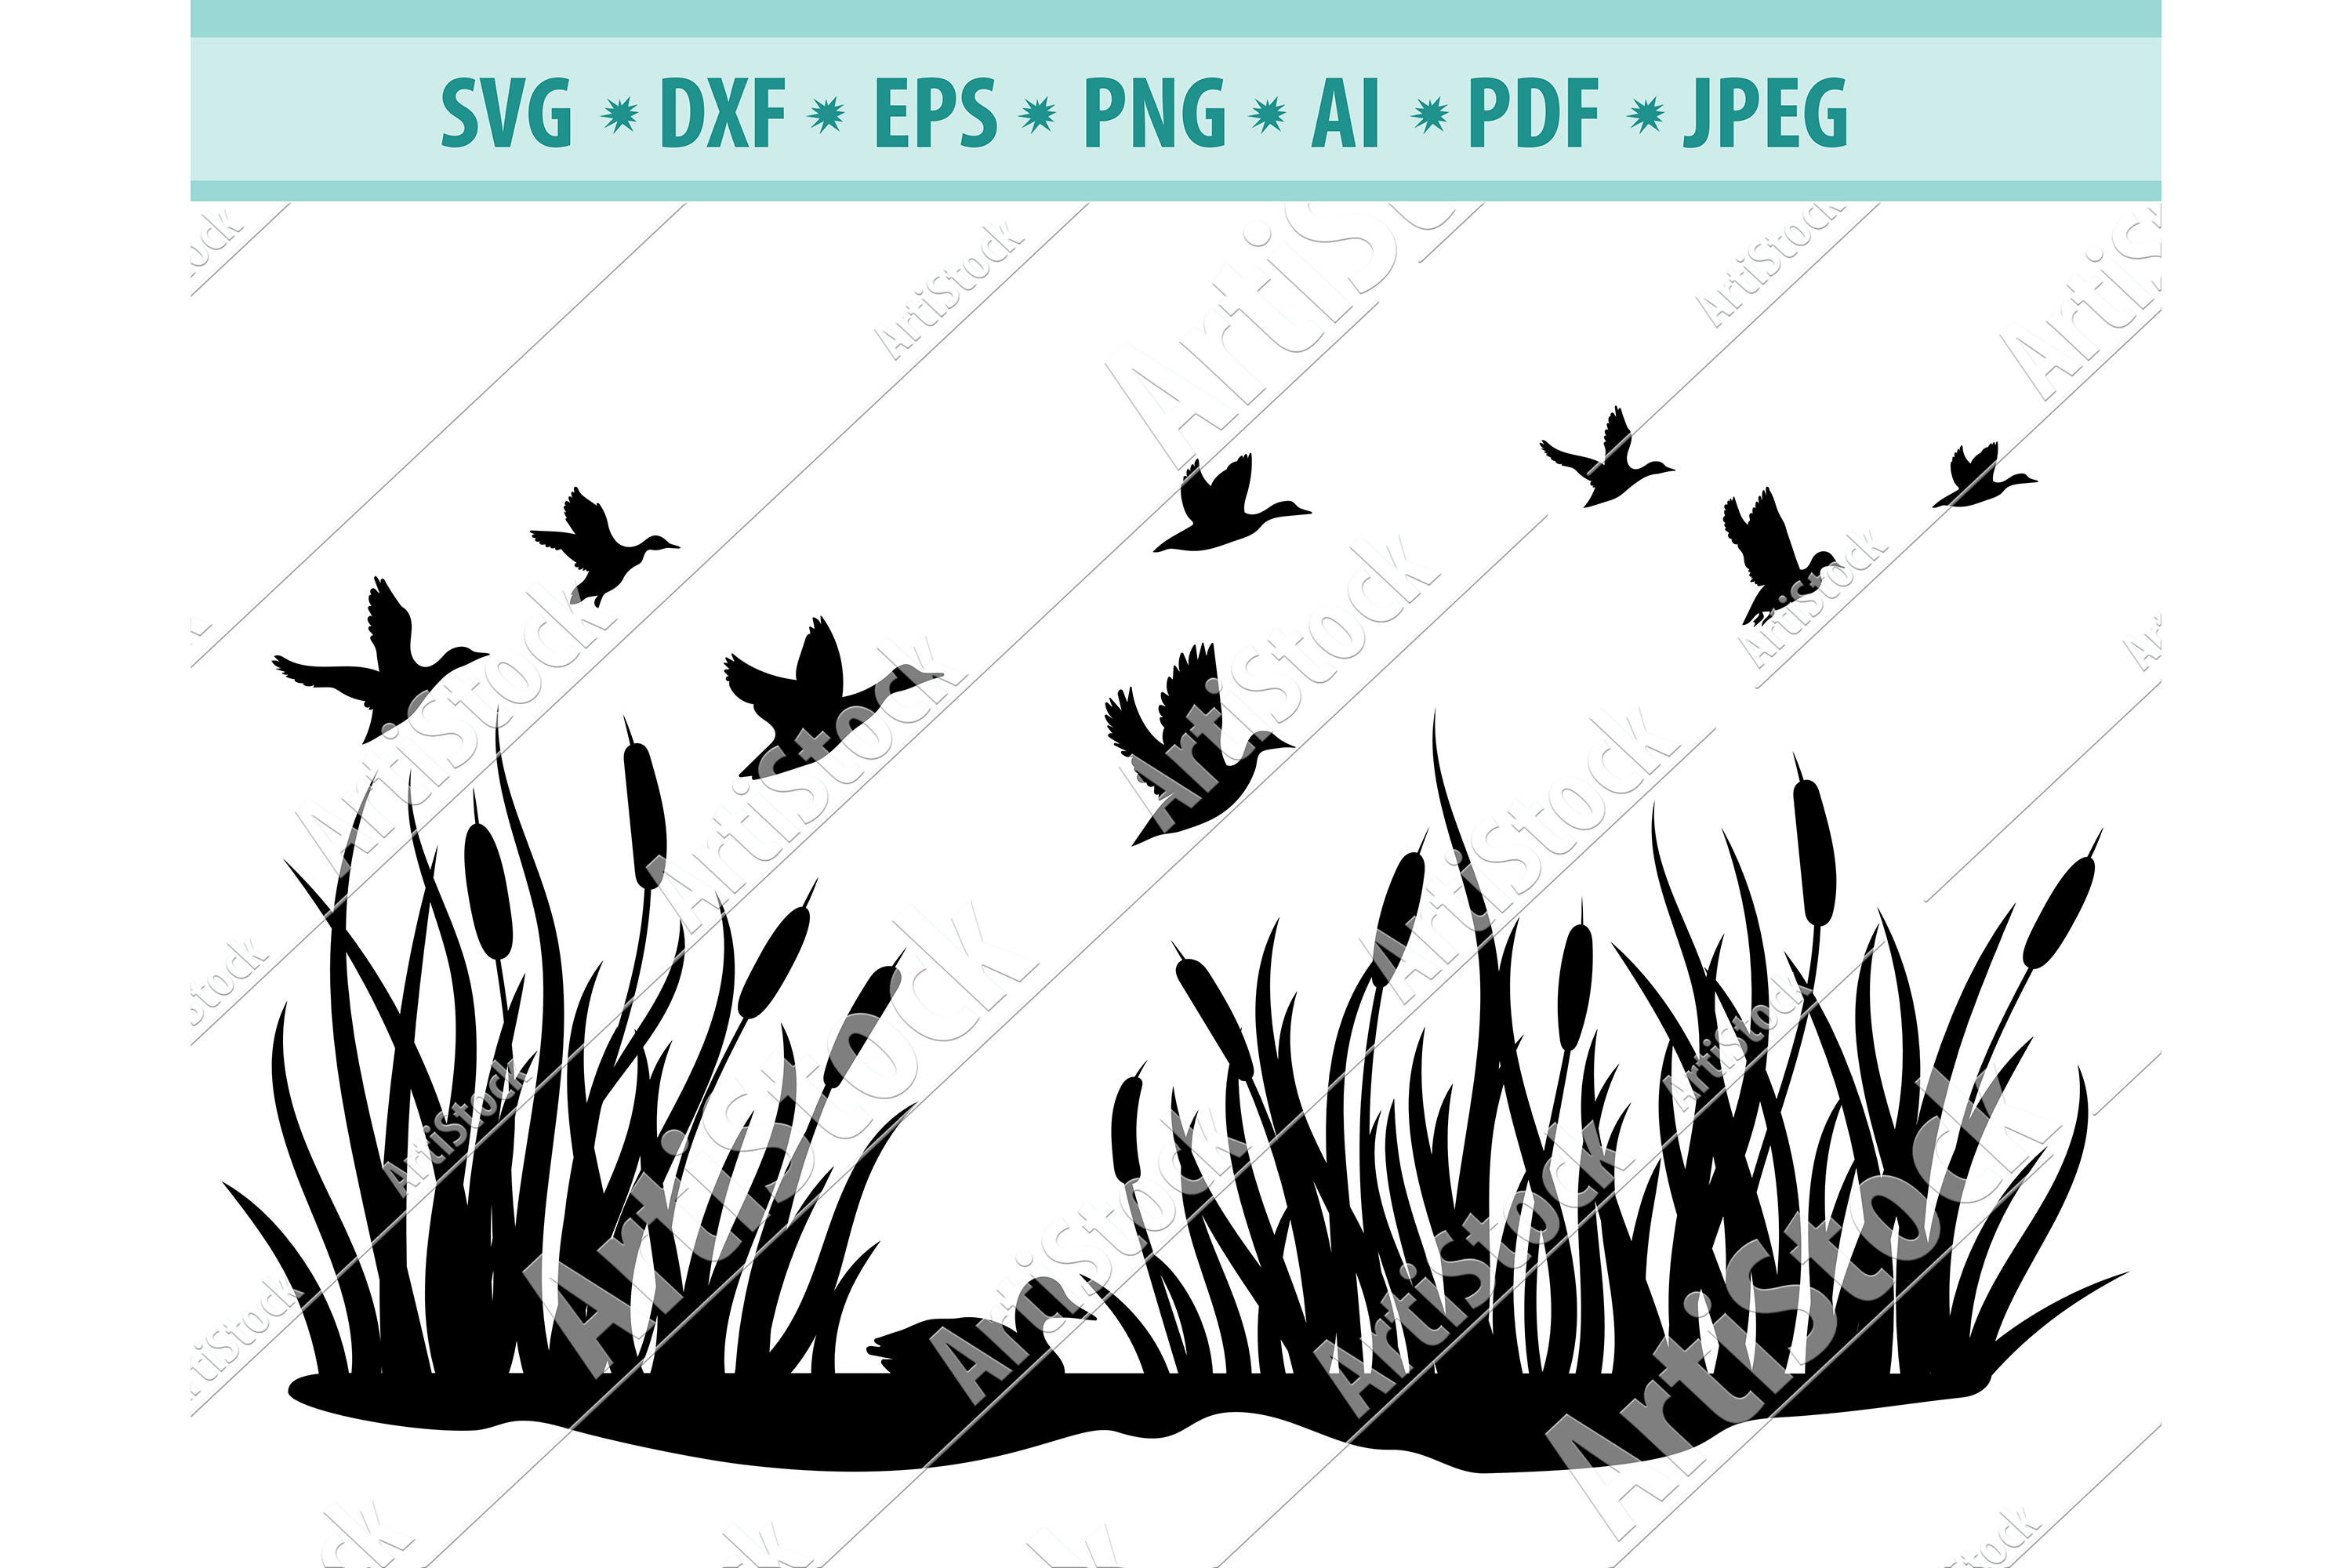 Flock of Birds SVG, Flying birds Svg, Animal Dxf, Png, Eps example image 1